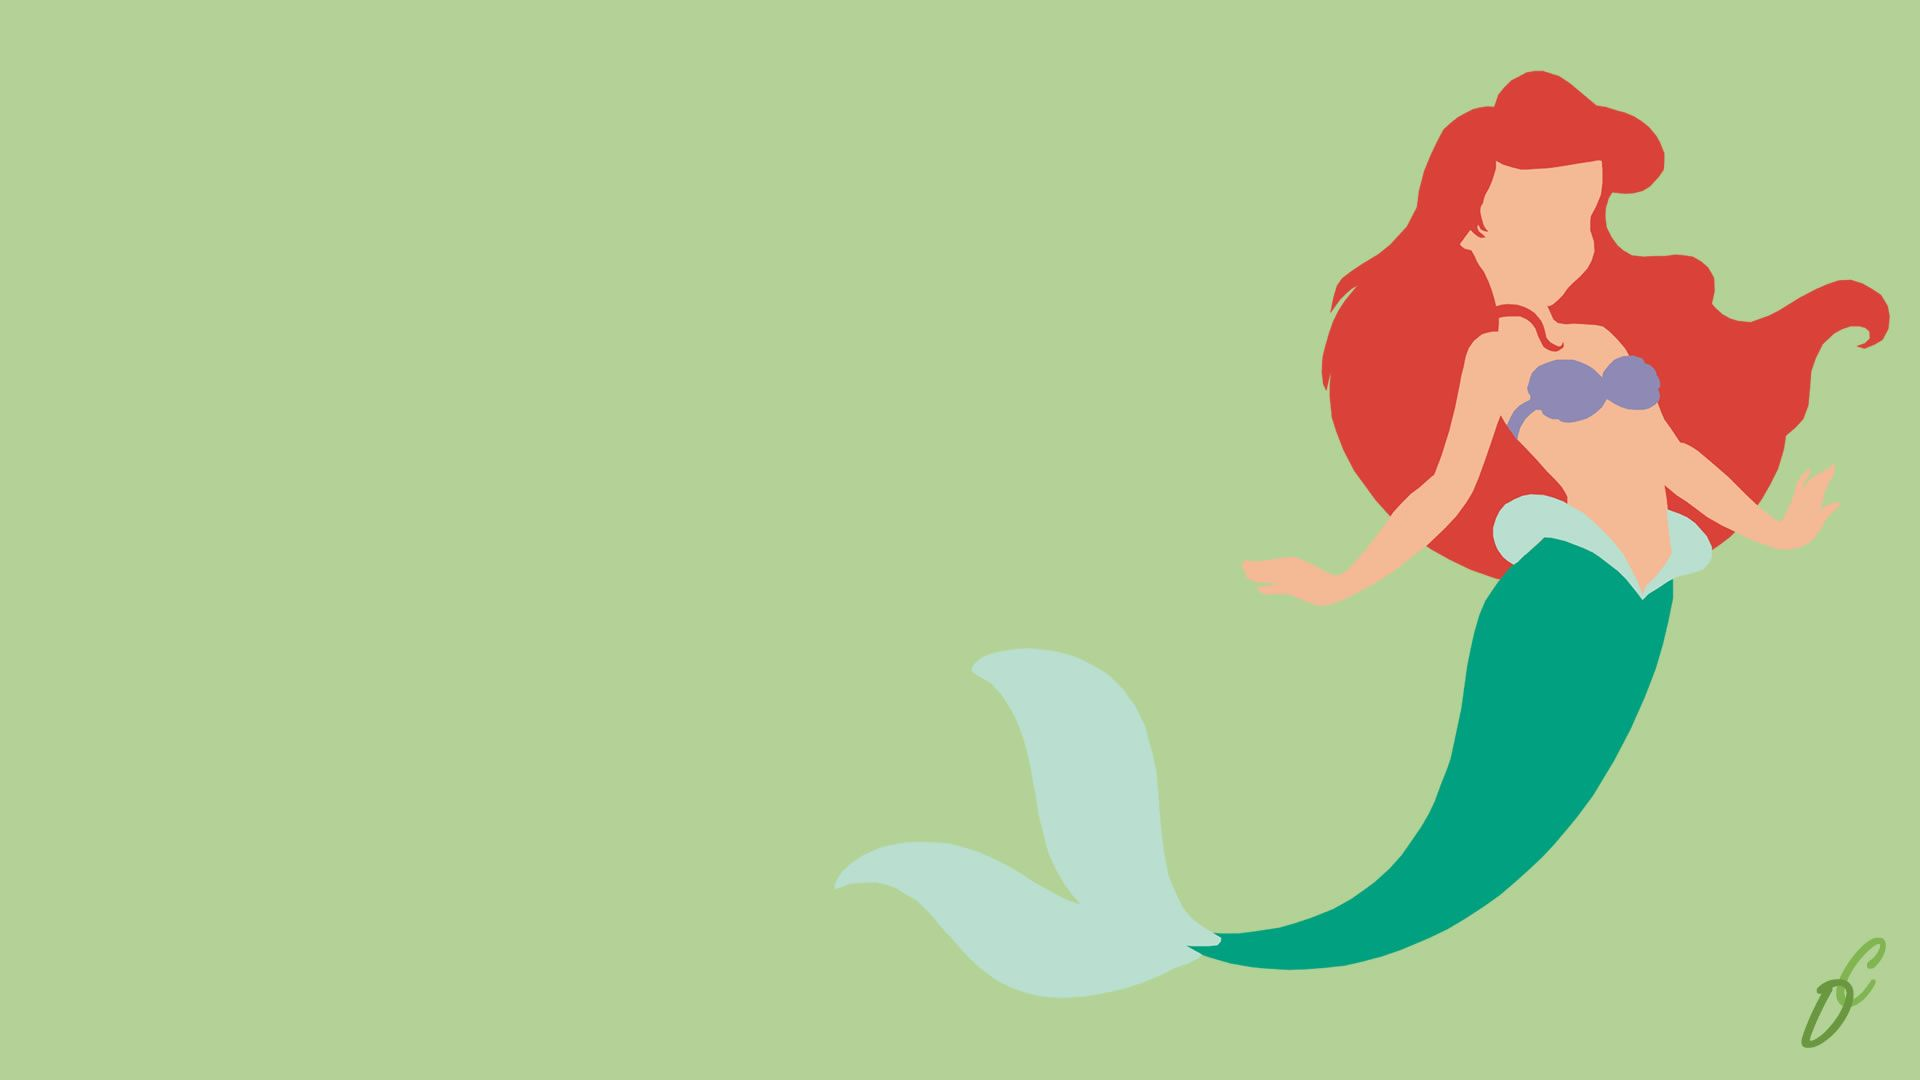 Disney Princess Minimalist Wallpapers